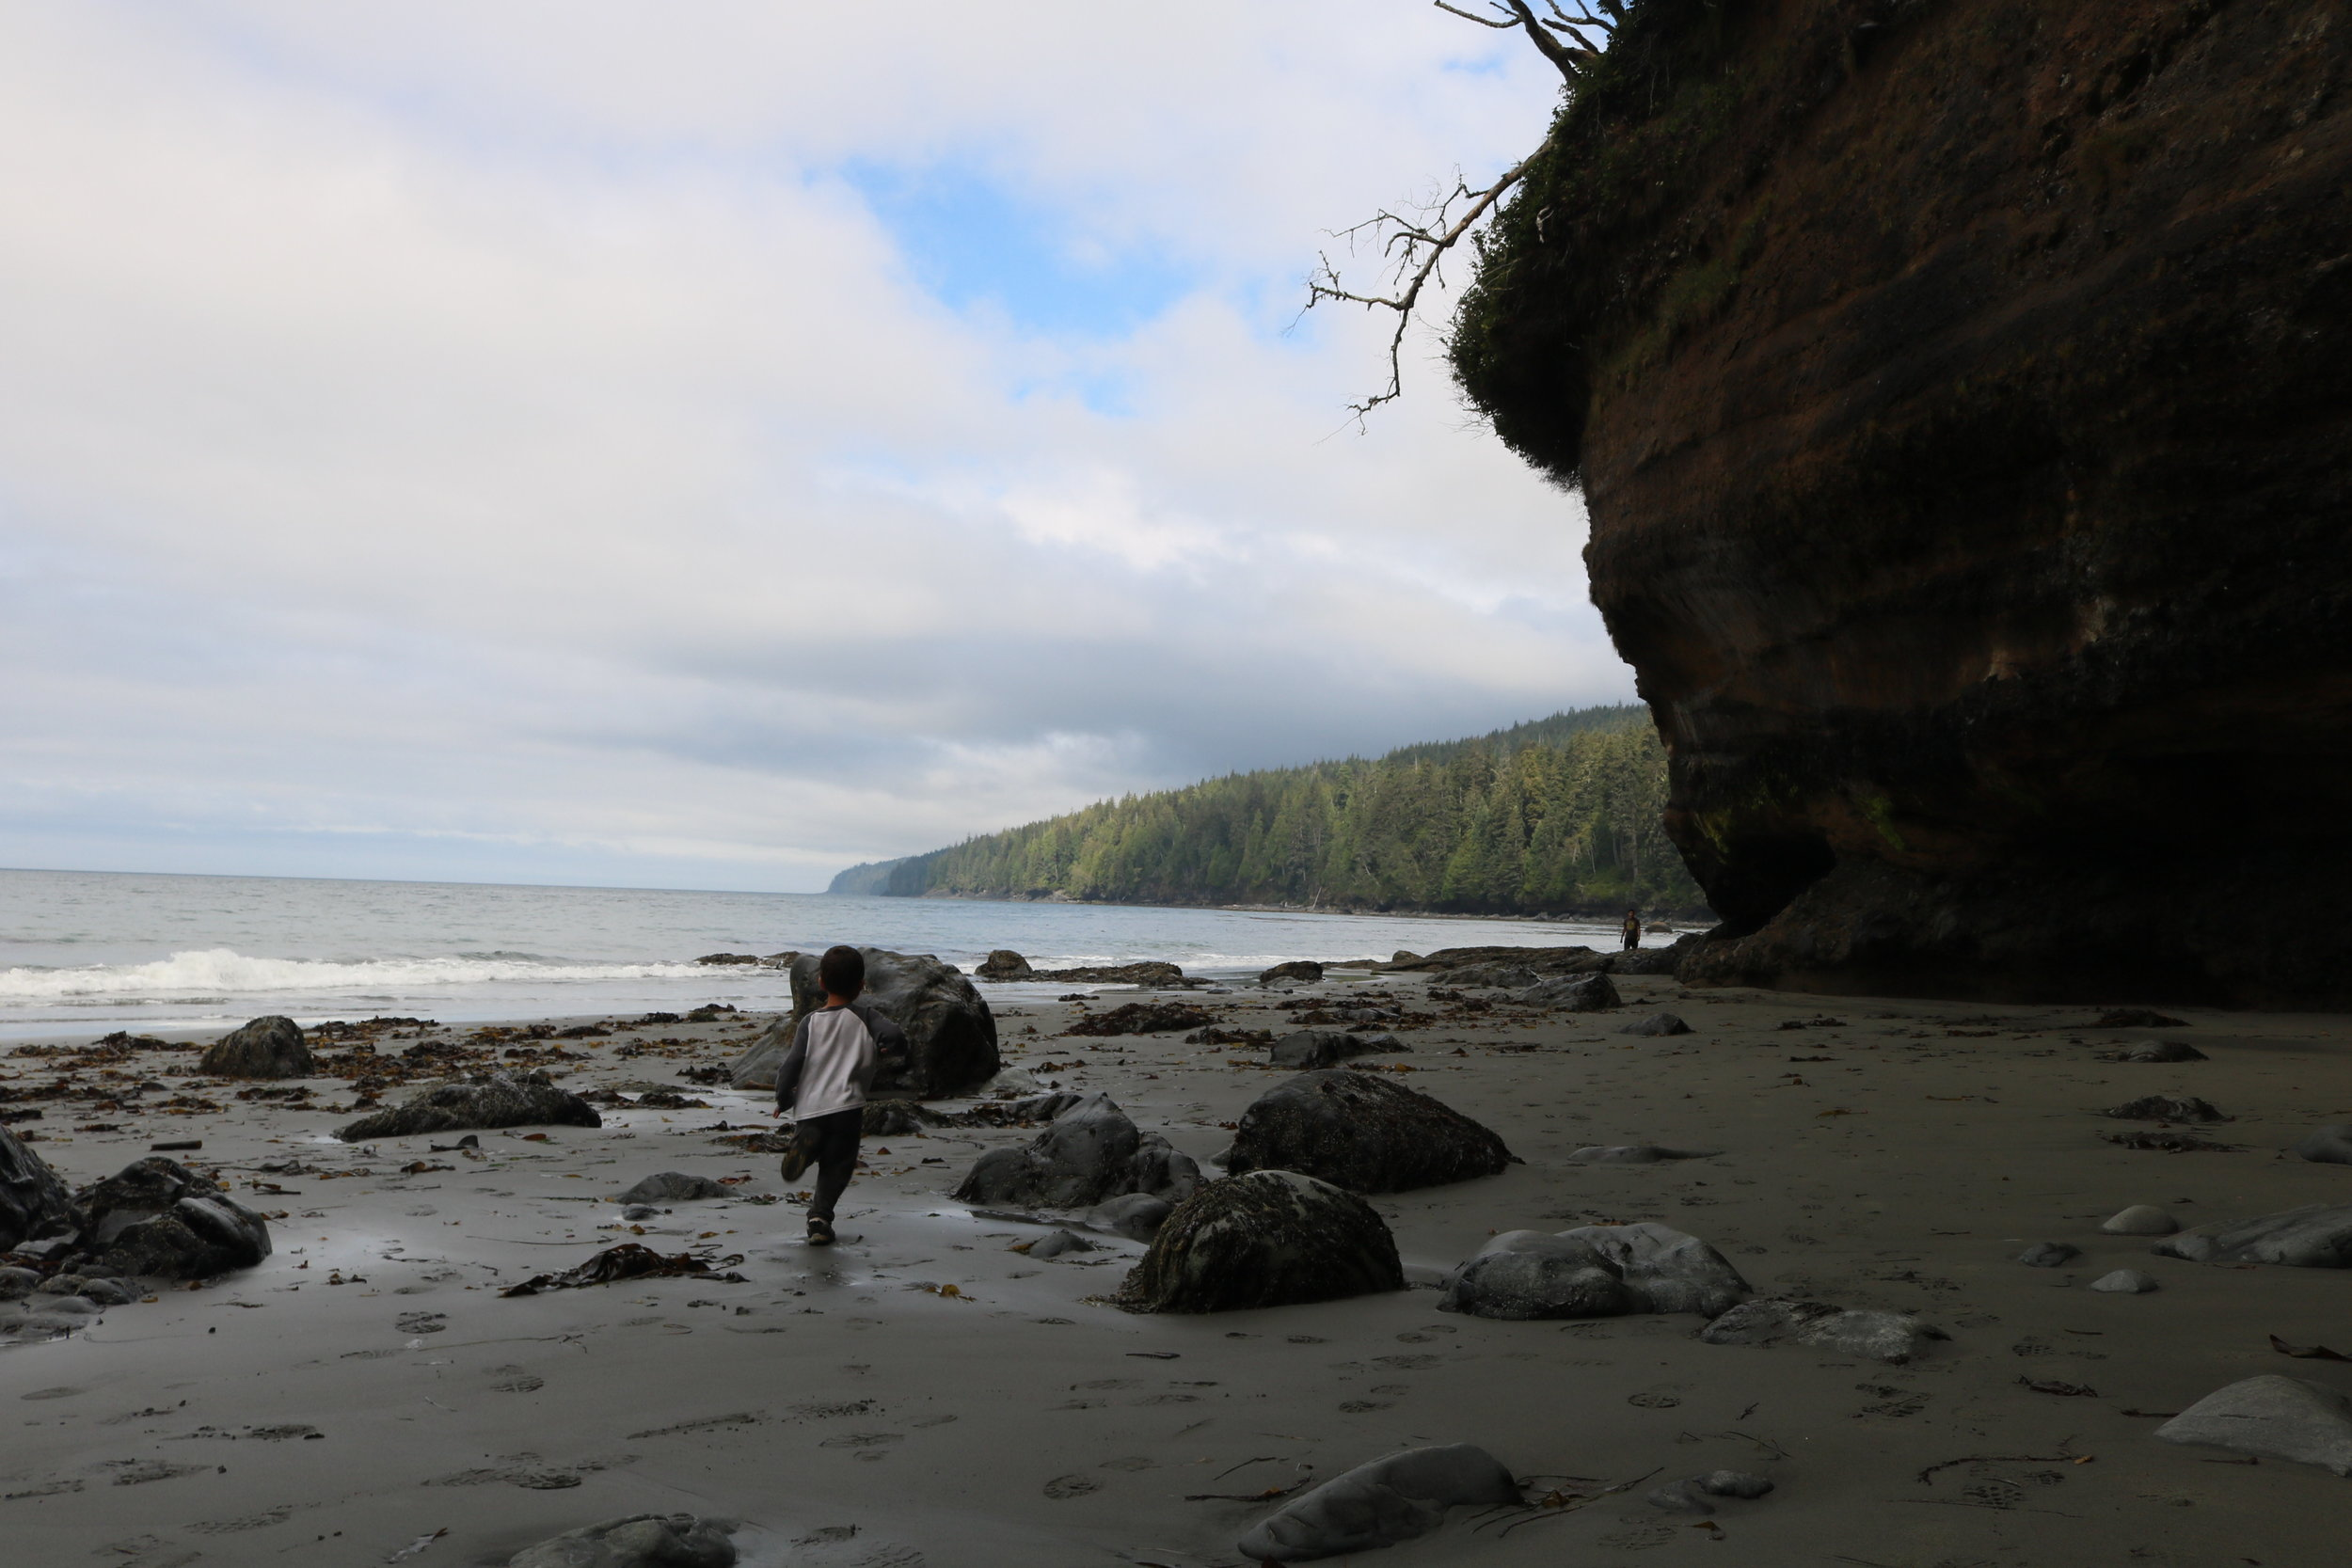 At low tide, there are sea caves and various other items to explore along Mystic Beach